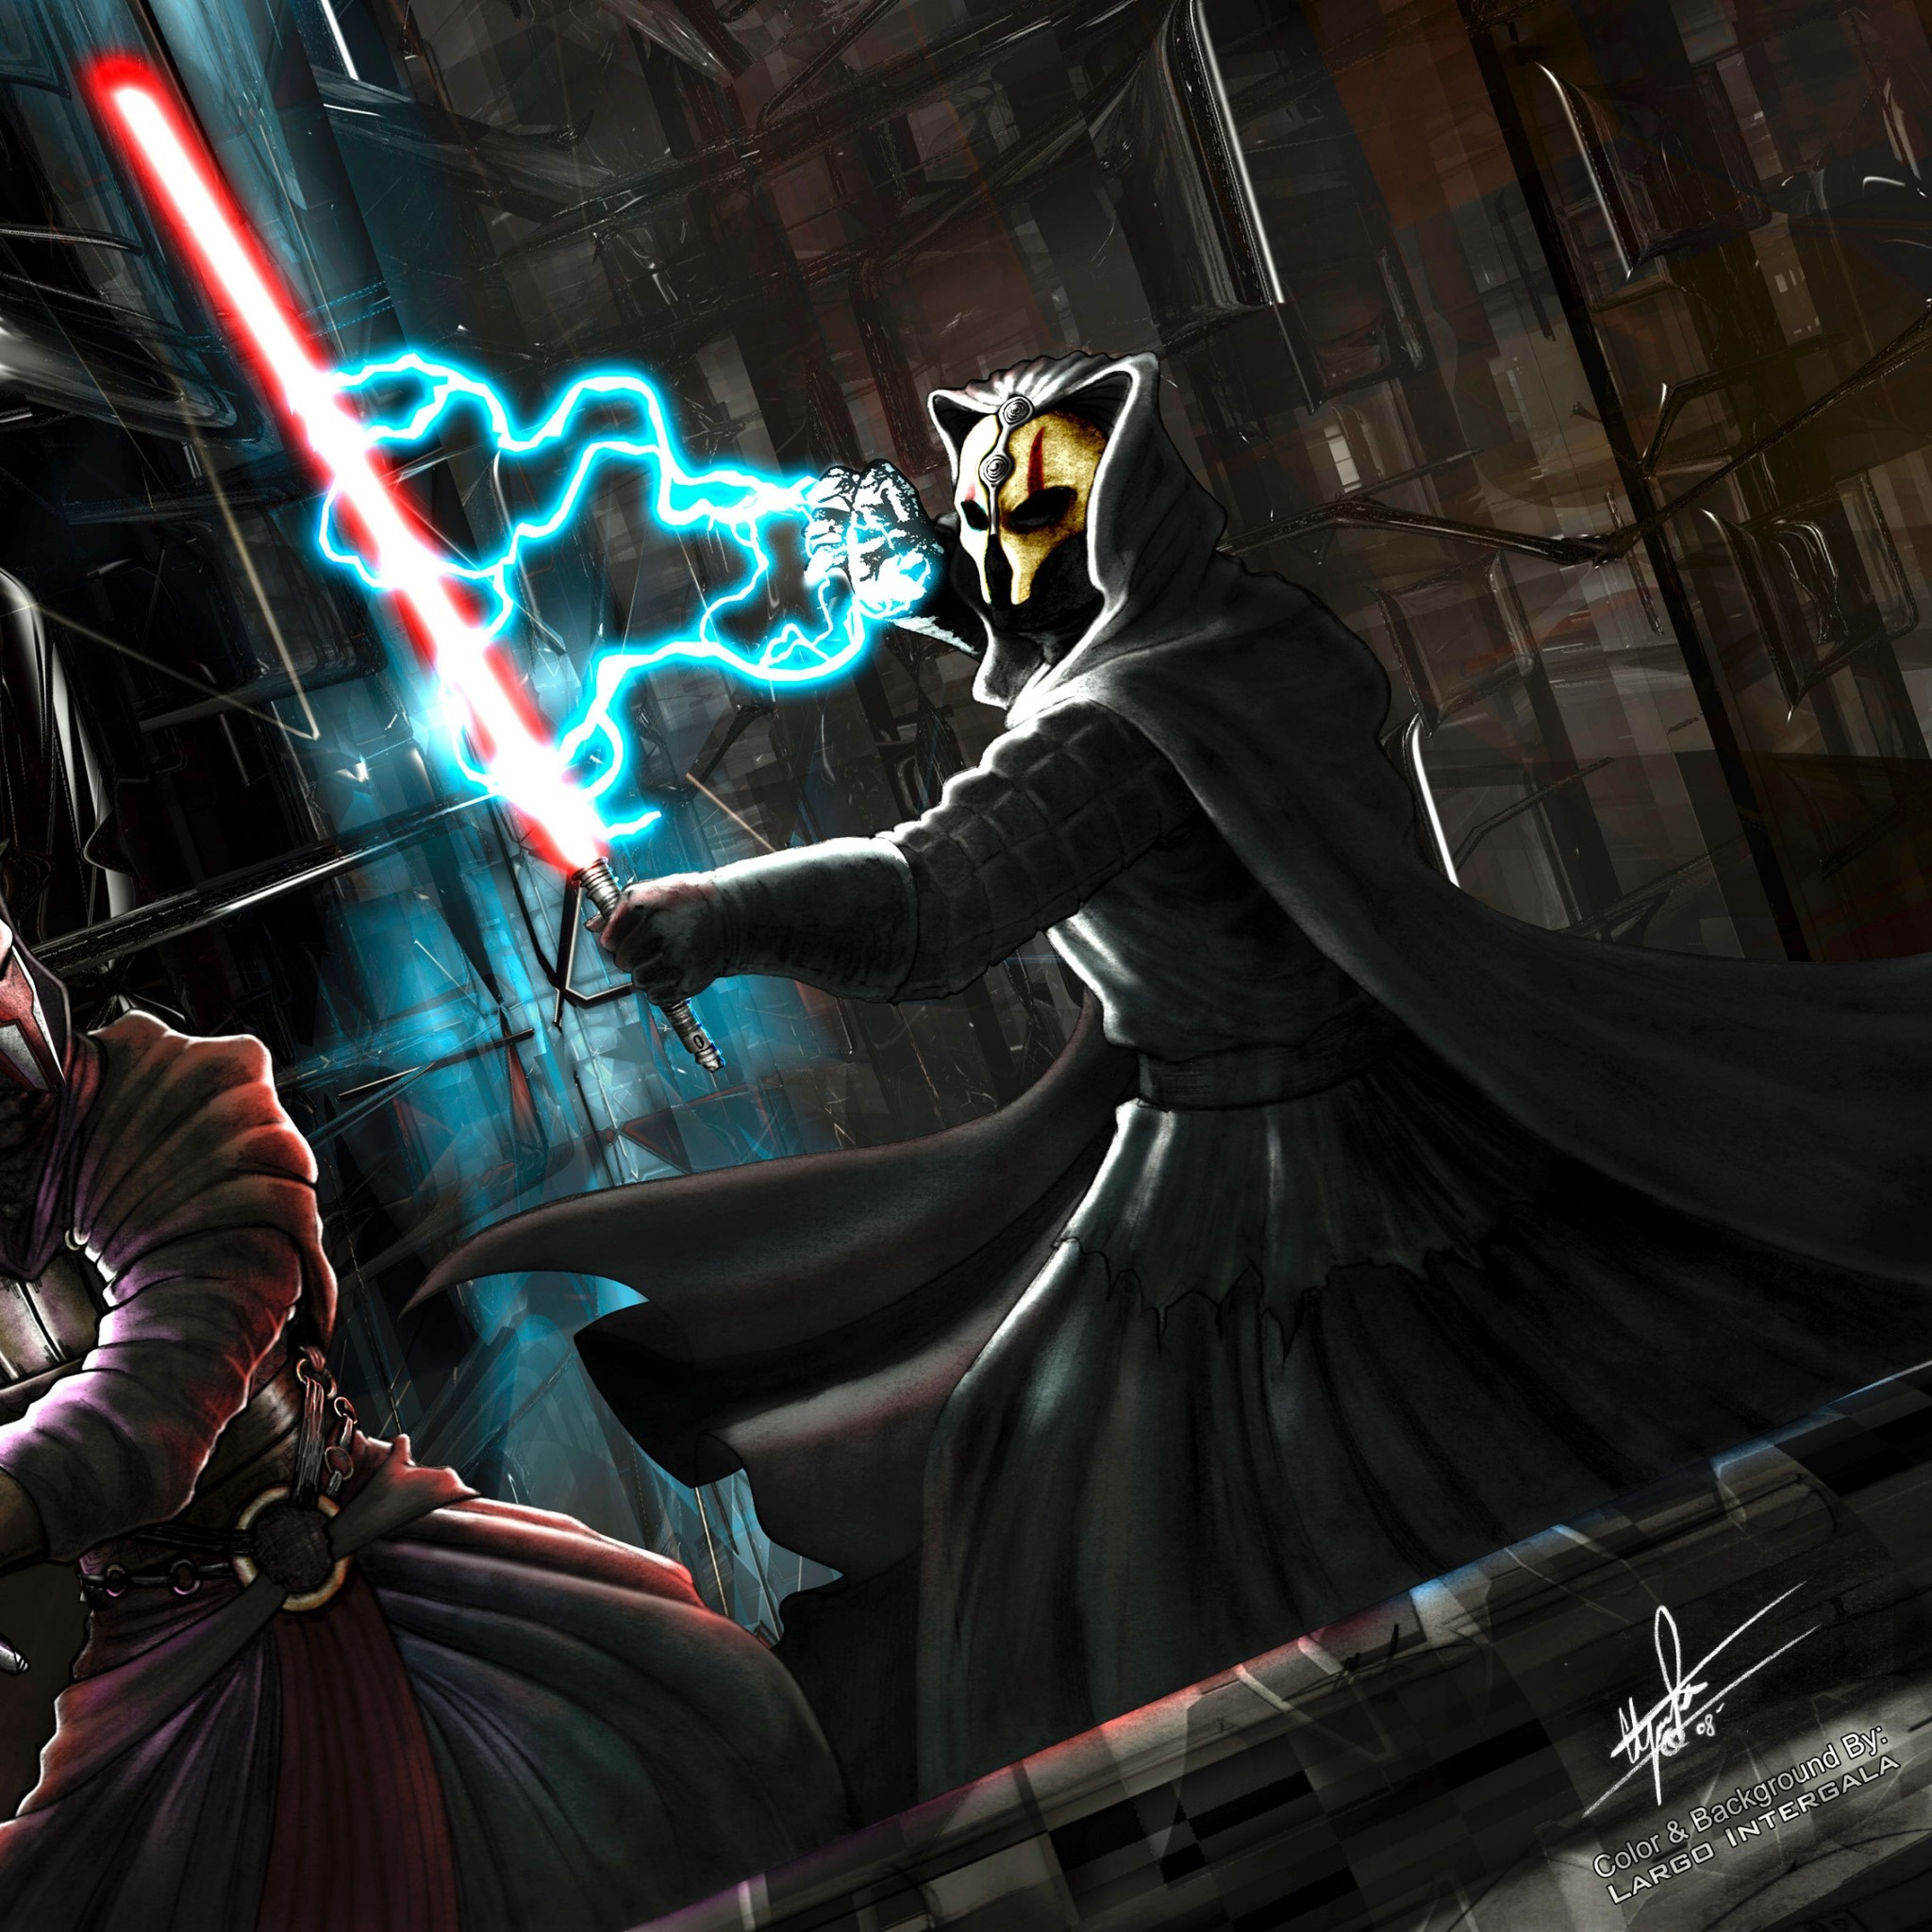 2048x2048  Wallpaper star wars, knights of the old republic, darth revan,  darth nihilus